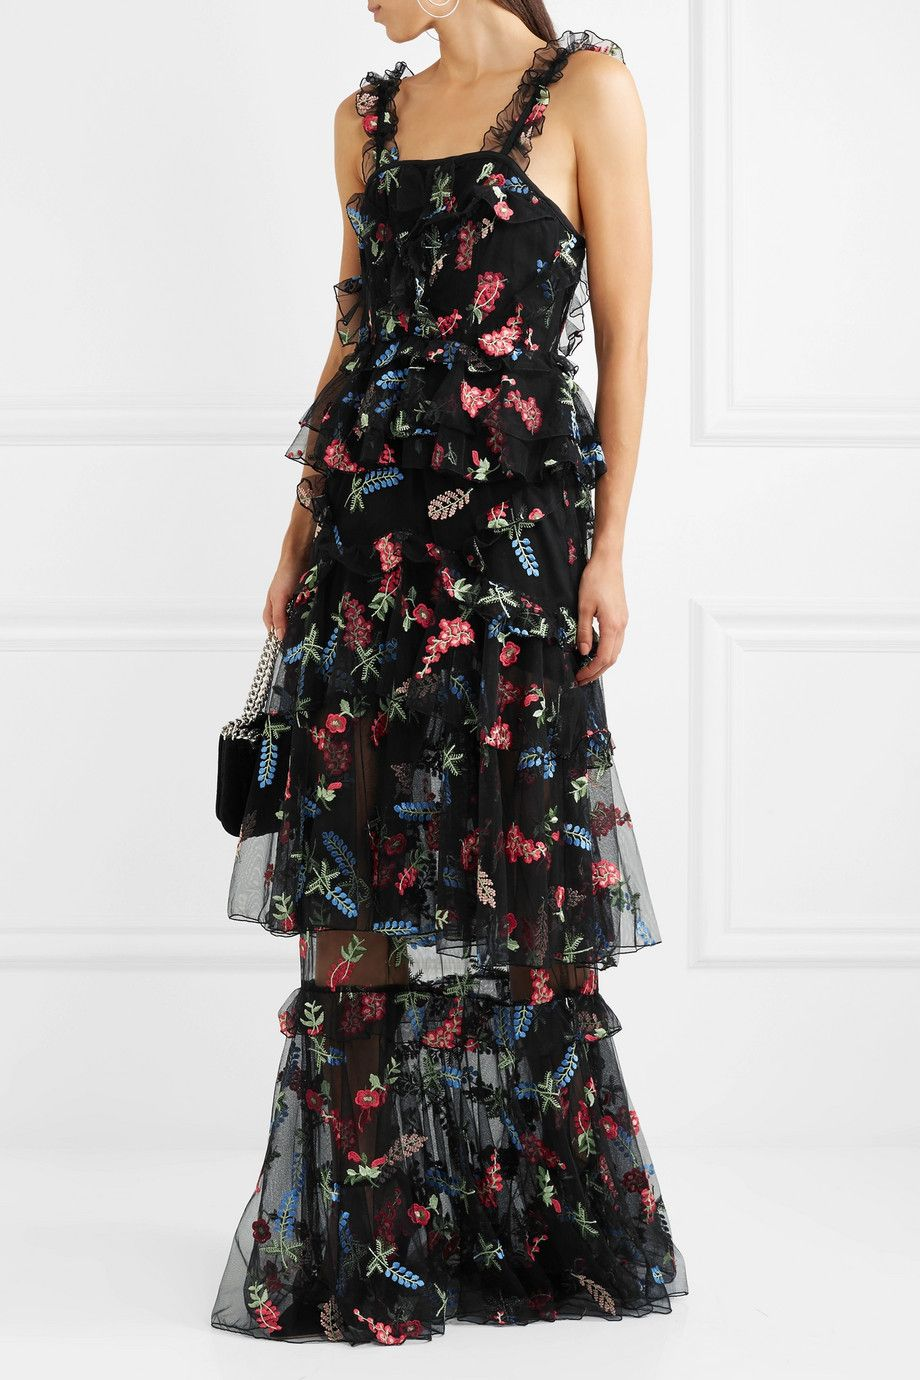 ee399aafced alice McCALL - She Moves Me tiered ruffled embroidered tulle maxi ...